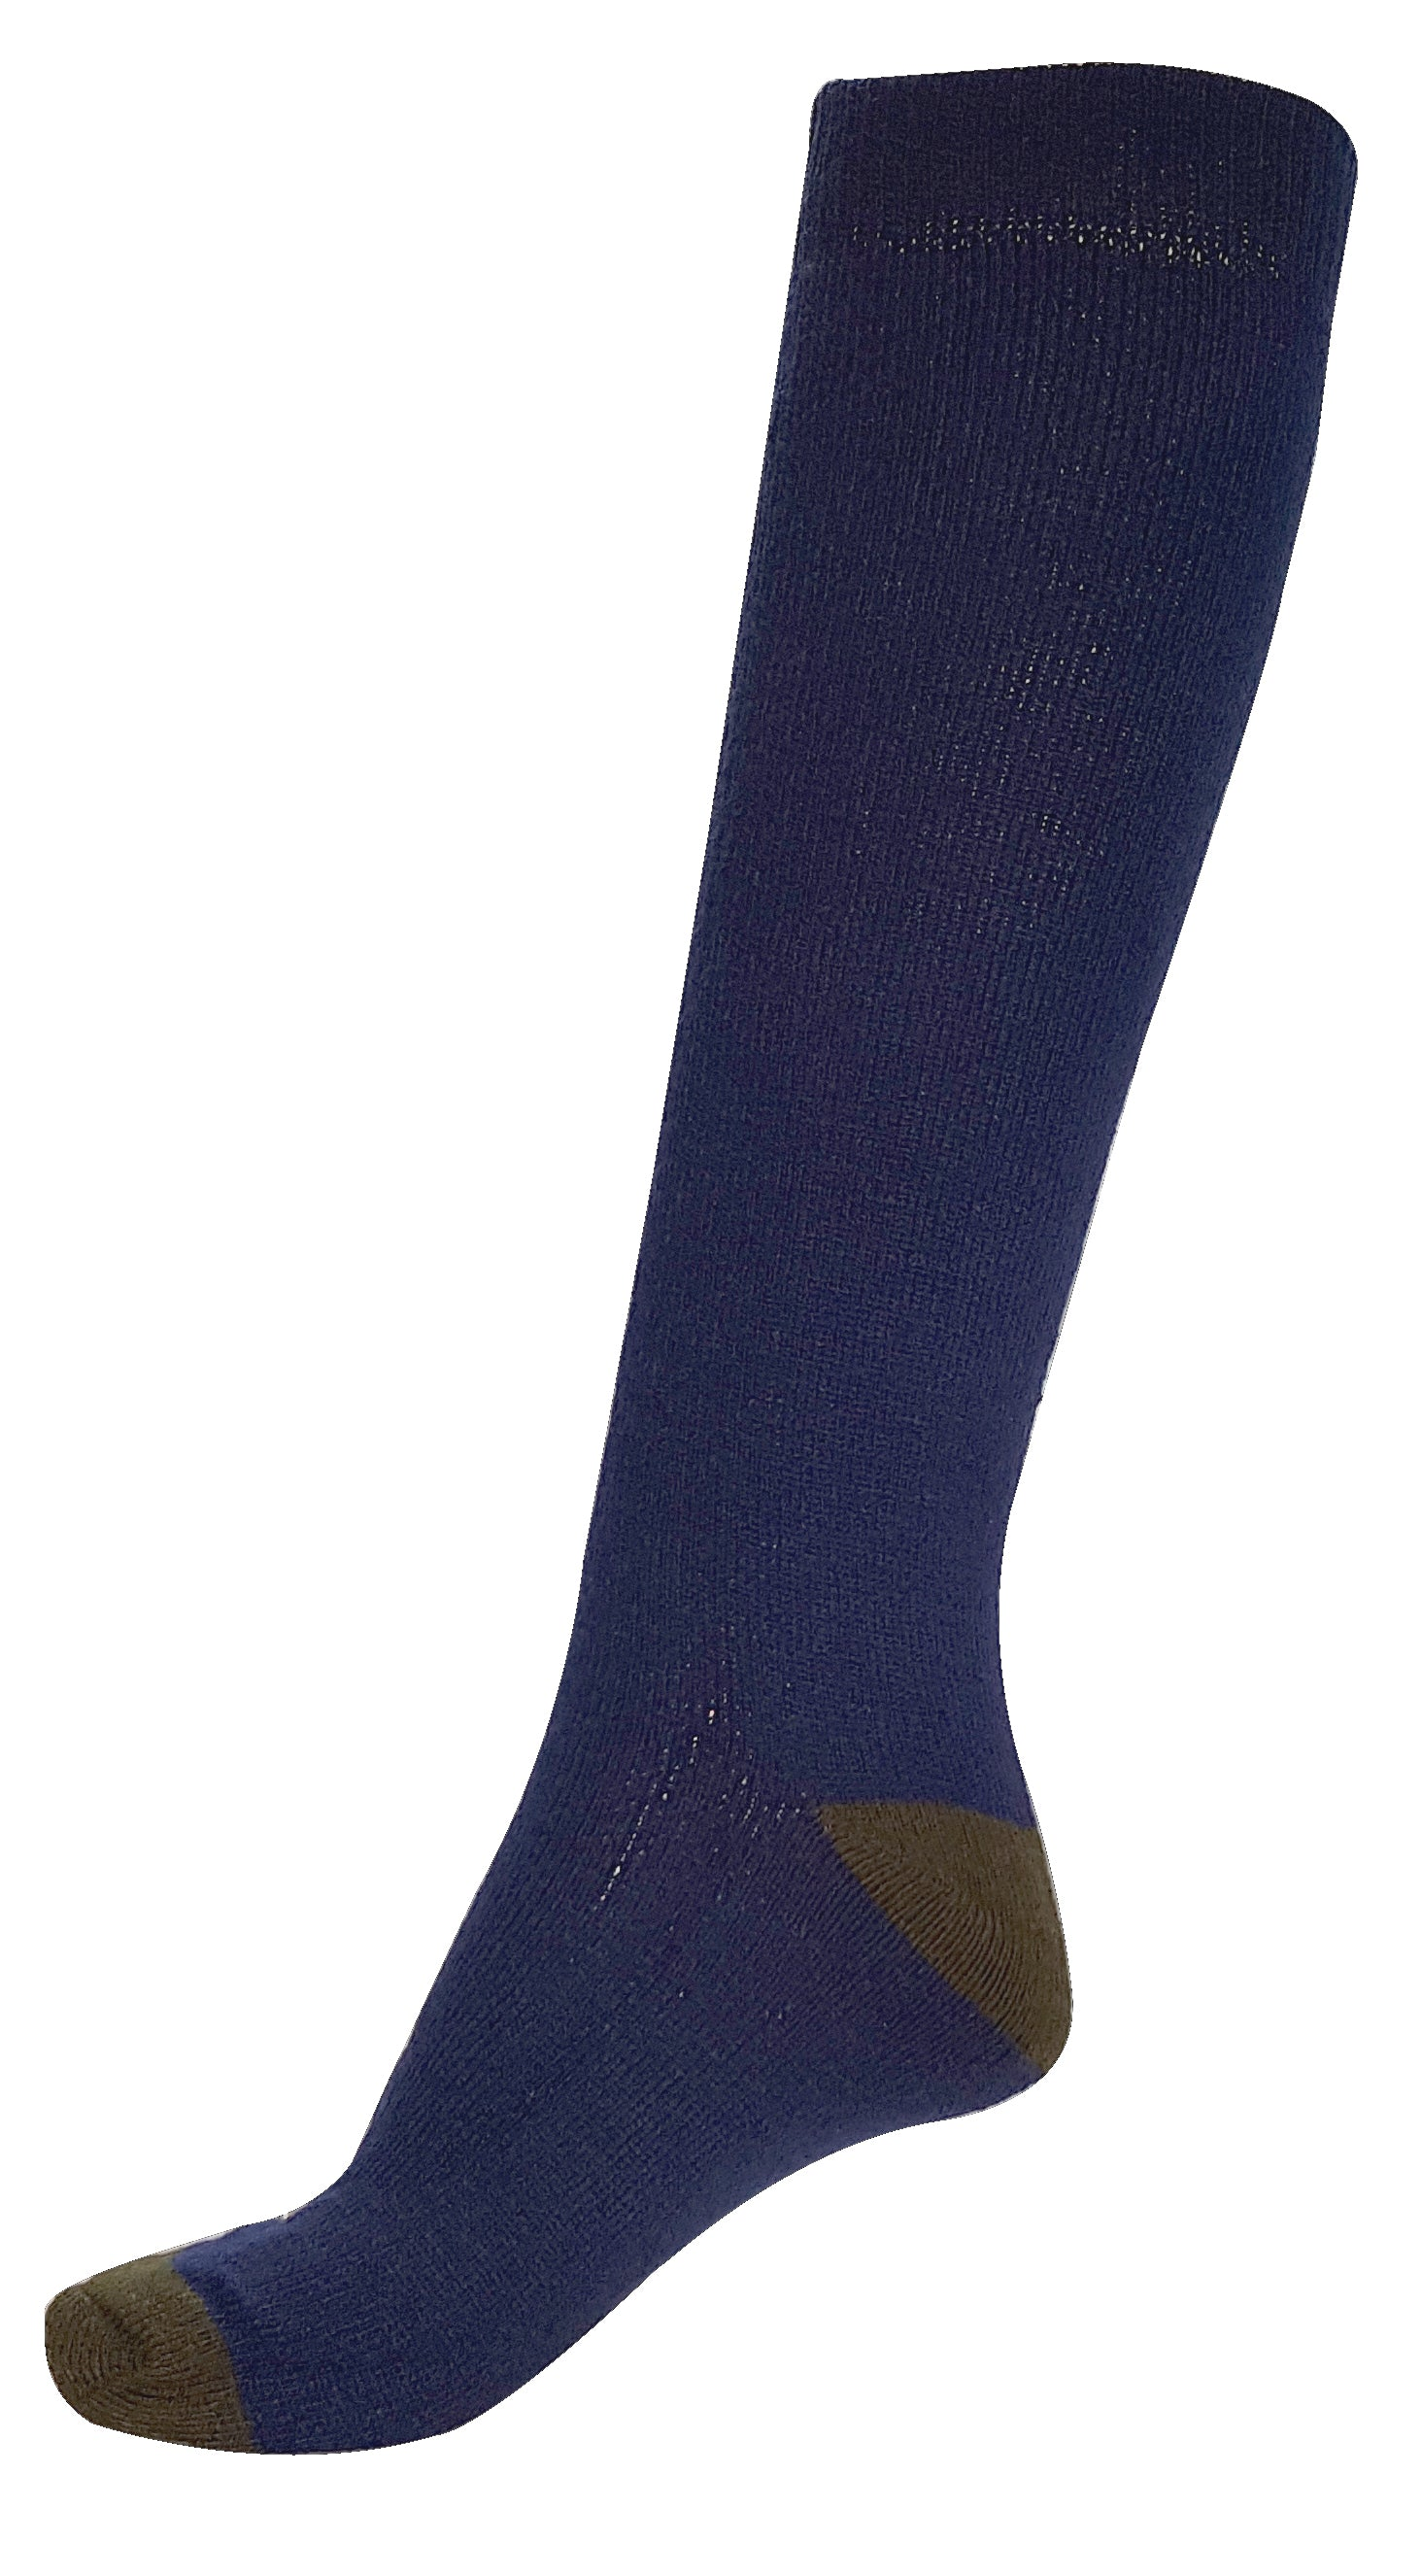 OCTAVE Mens Wellington Wellie Boot Socks - Contrast Heel & Toe